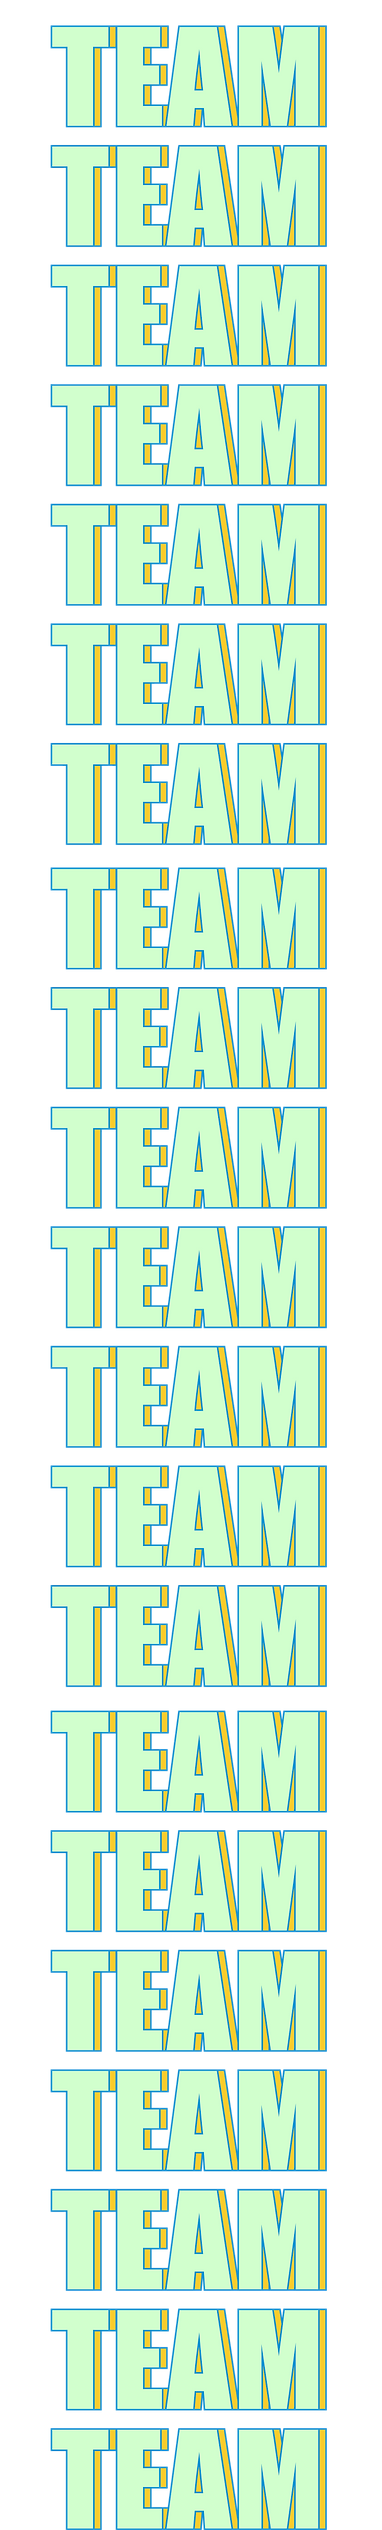 TEAM TYPO.png